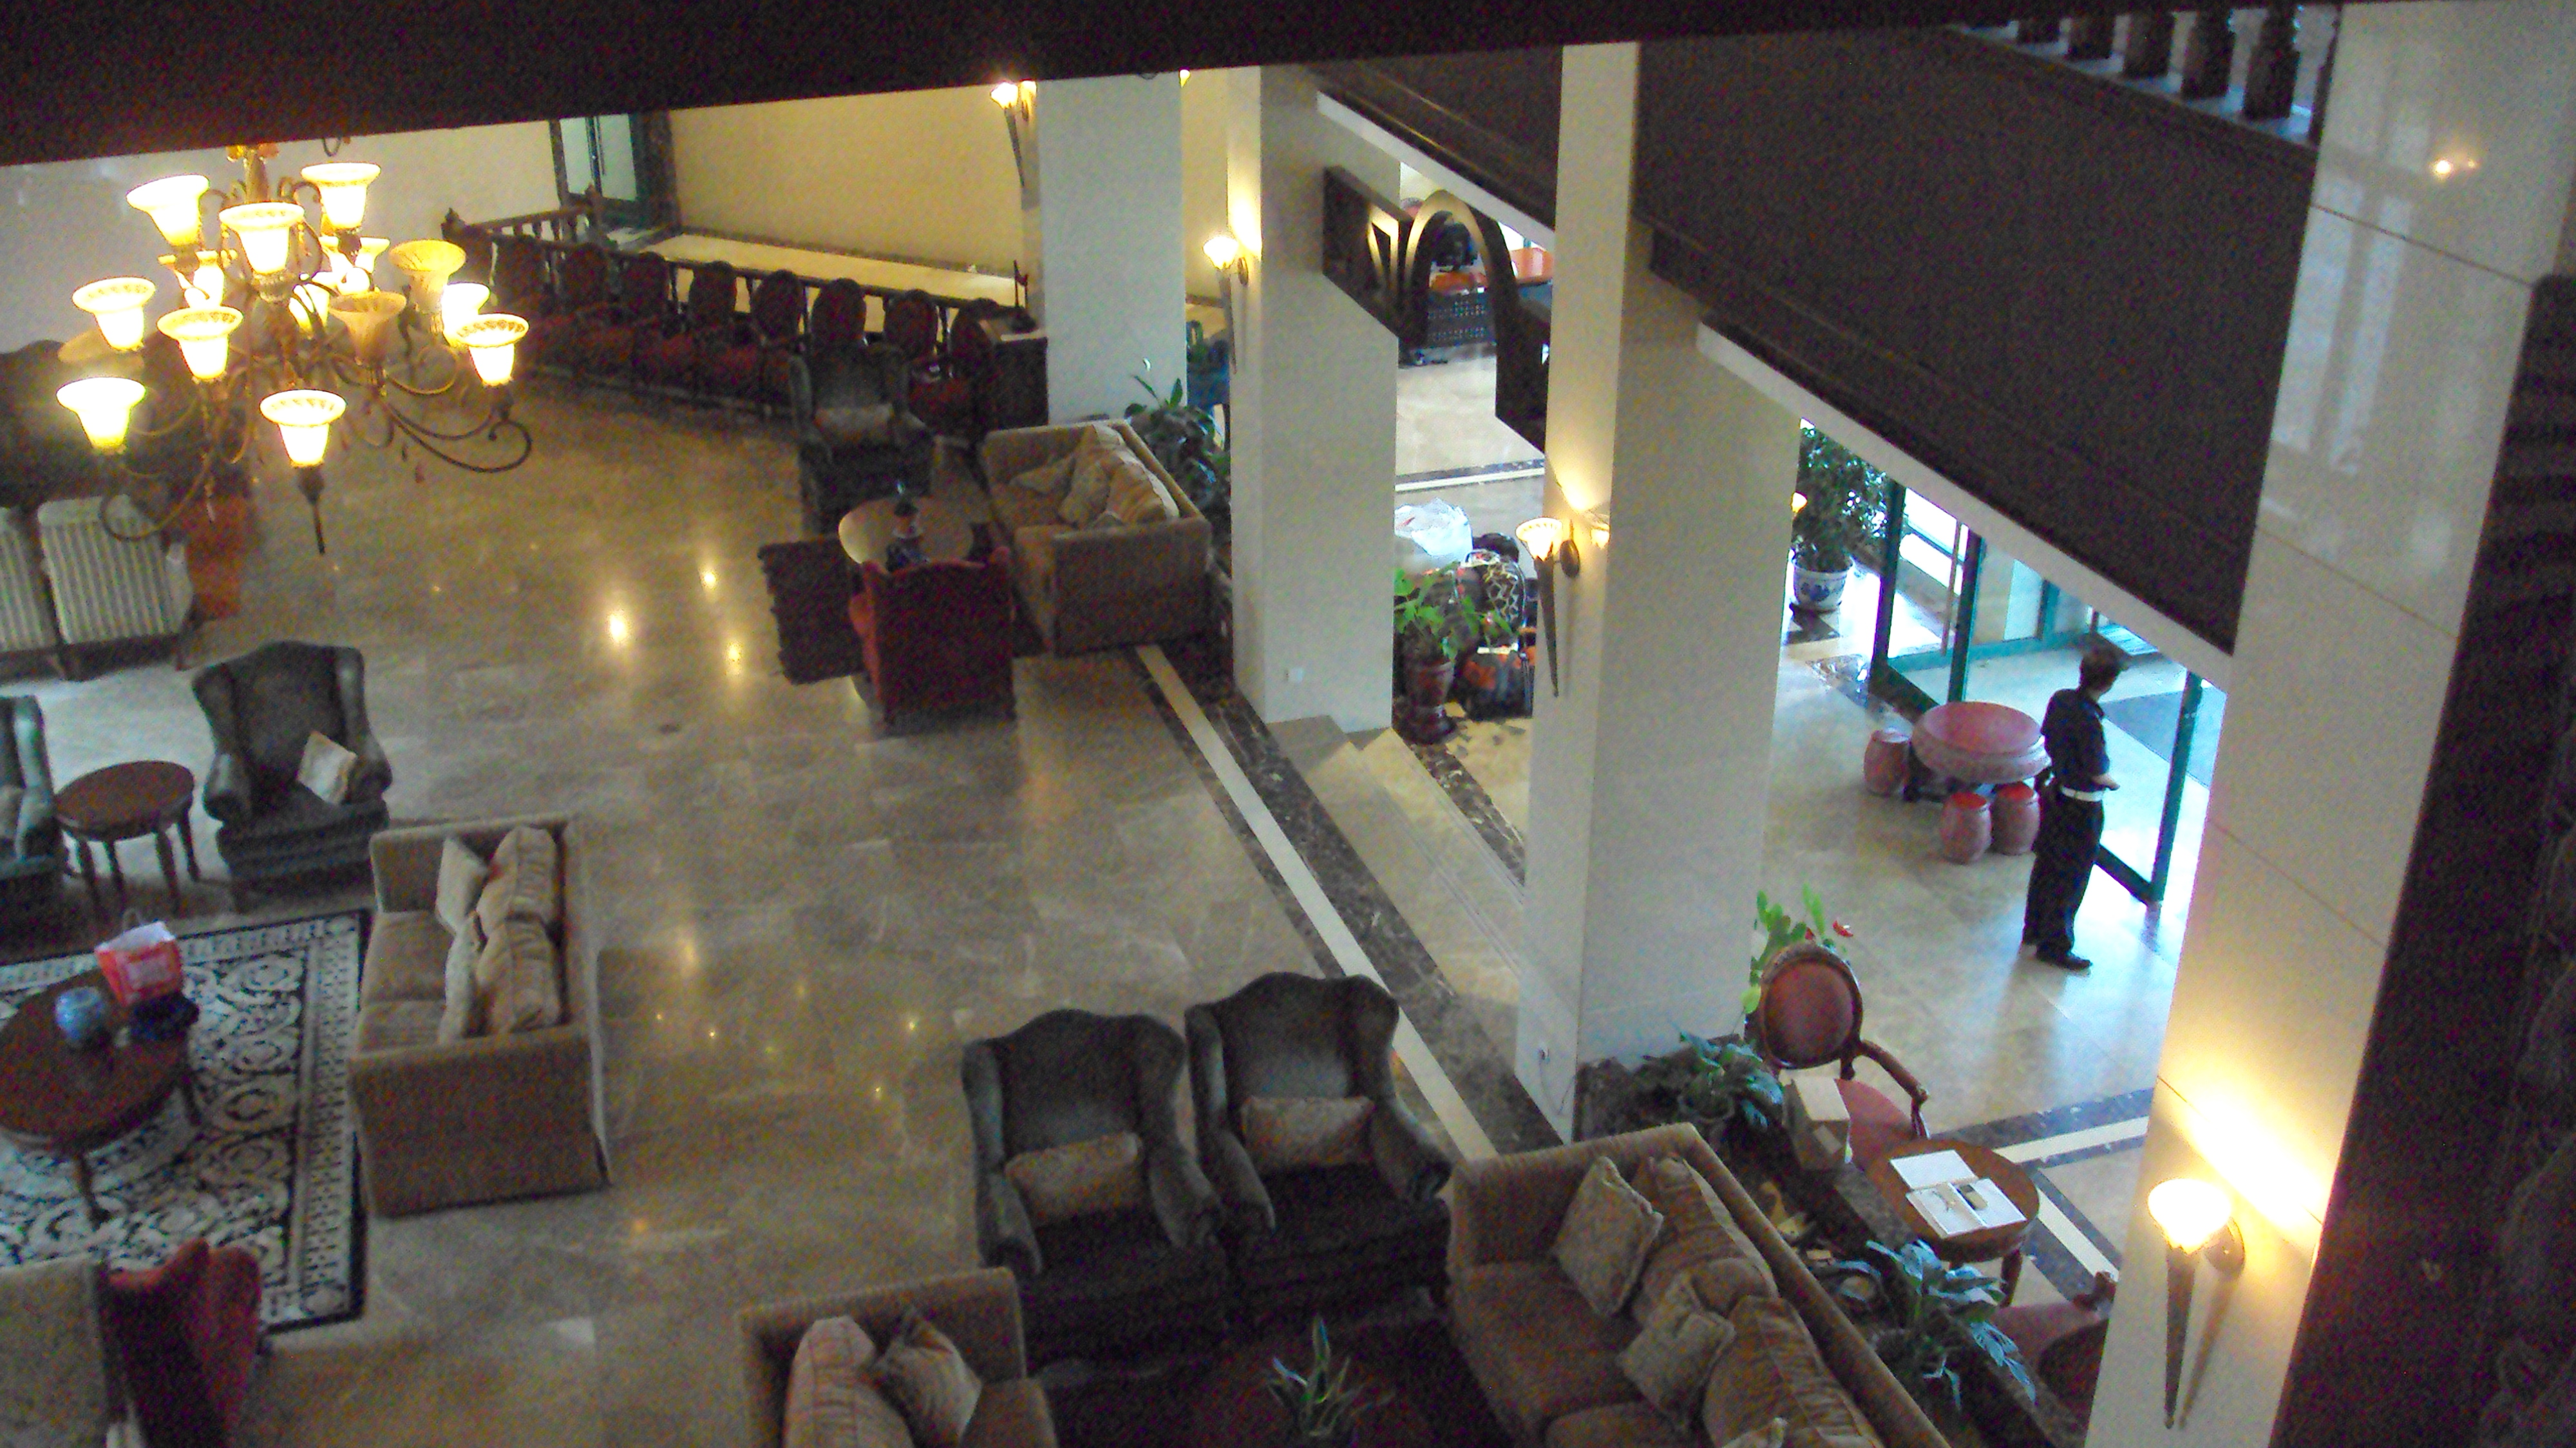 the lobby to our building